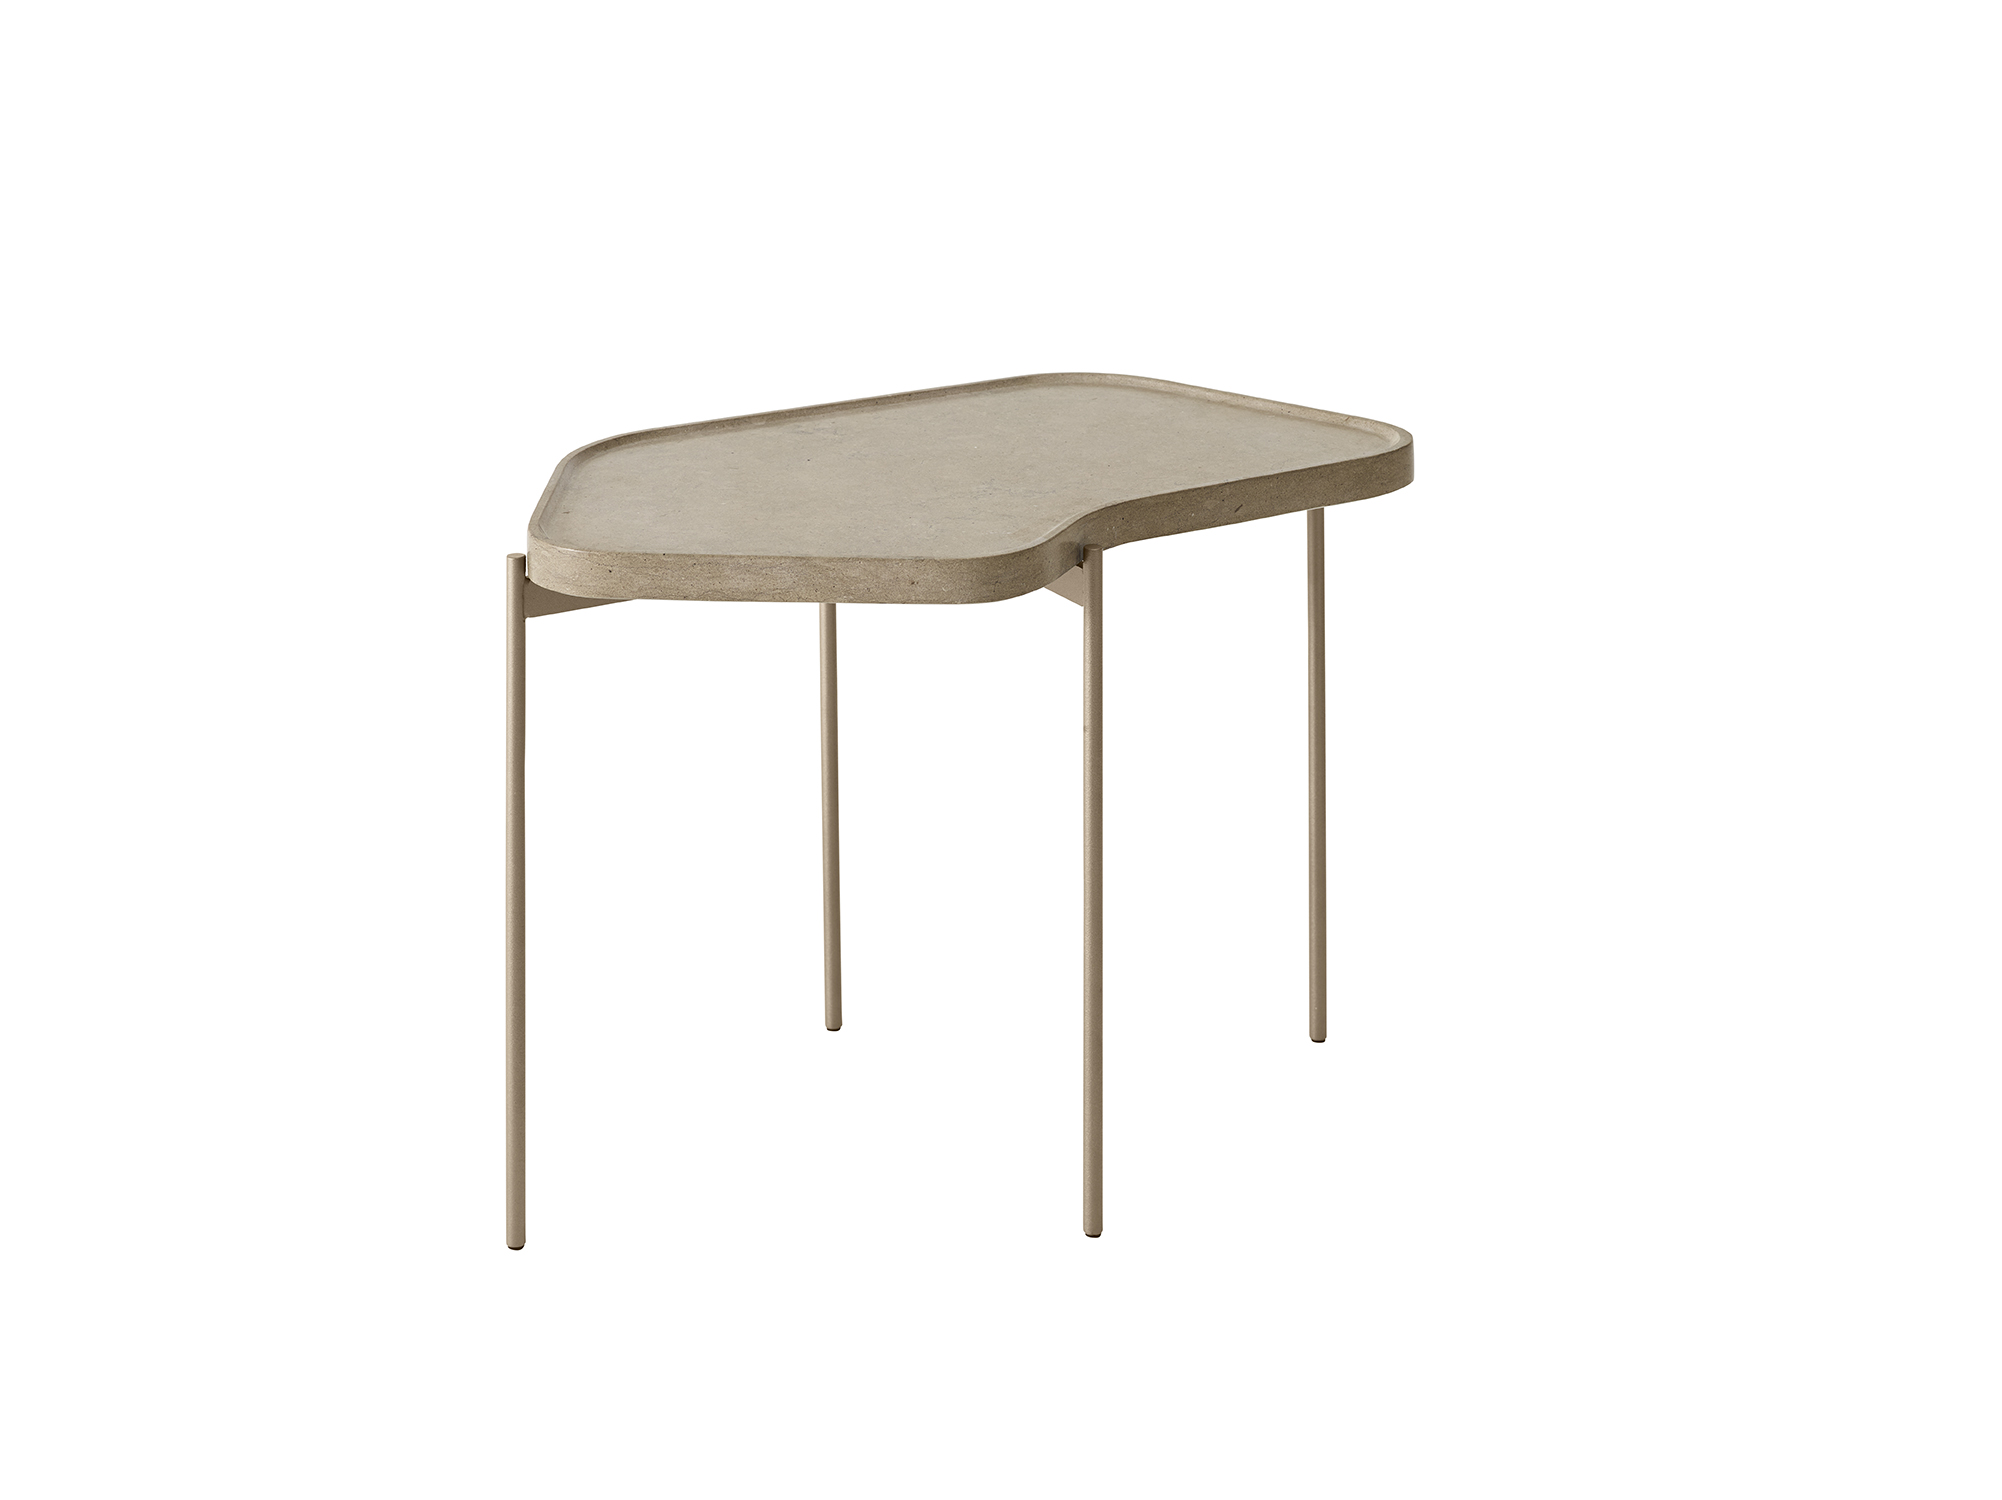 Pond sidetable for Swedese - Exhibiting at Swedese, Milan Furniture Fair, Hall 16, Stand E26